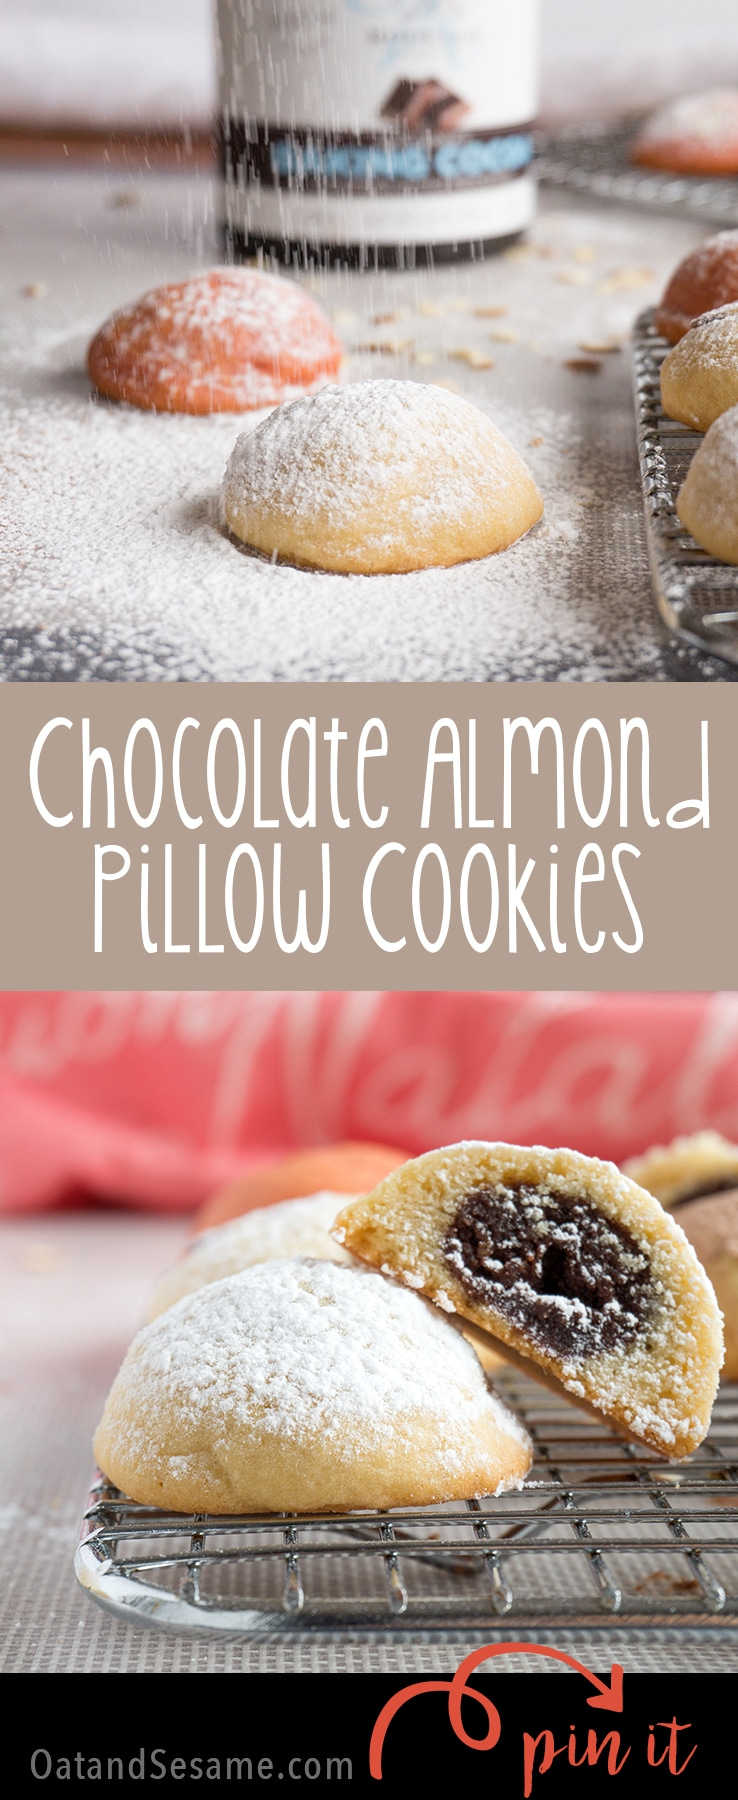 Chocolate Almond Pillow Cookies have a secret to reveal. Inside these puffy little gems is a pocket of chocolate almond delight.   #Christmas   #COOKIES   Holiday Baking   Almond LOVE   #COOKIES   #Recipes at OatandSesame.com